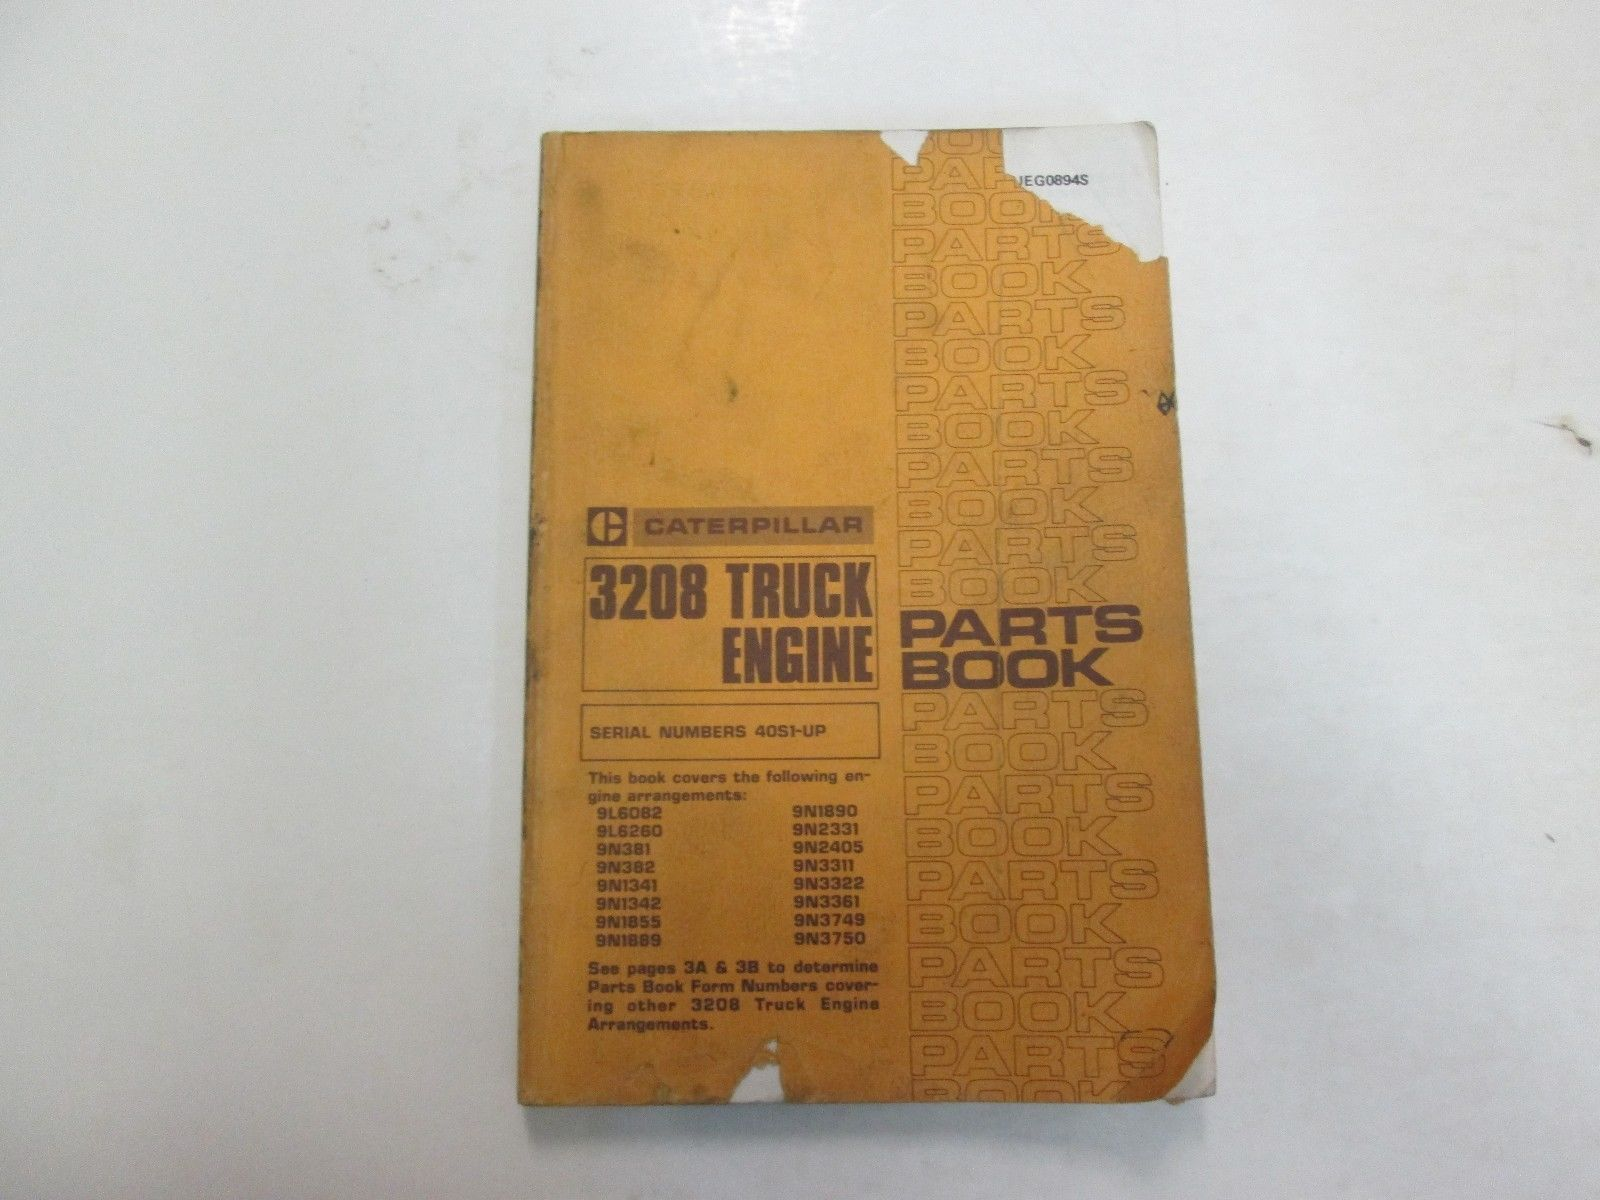 Primary image for Caterpillar 3208 Truck Engine Parts Book Manual 40S1-UP UEG0894S DAMAGE STAINS